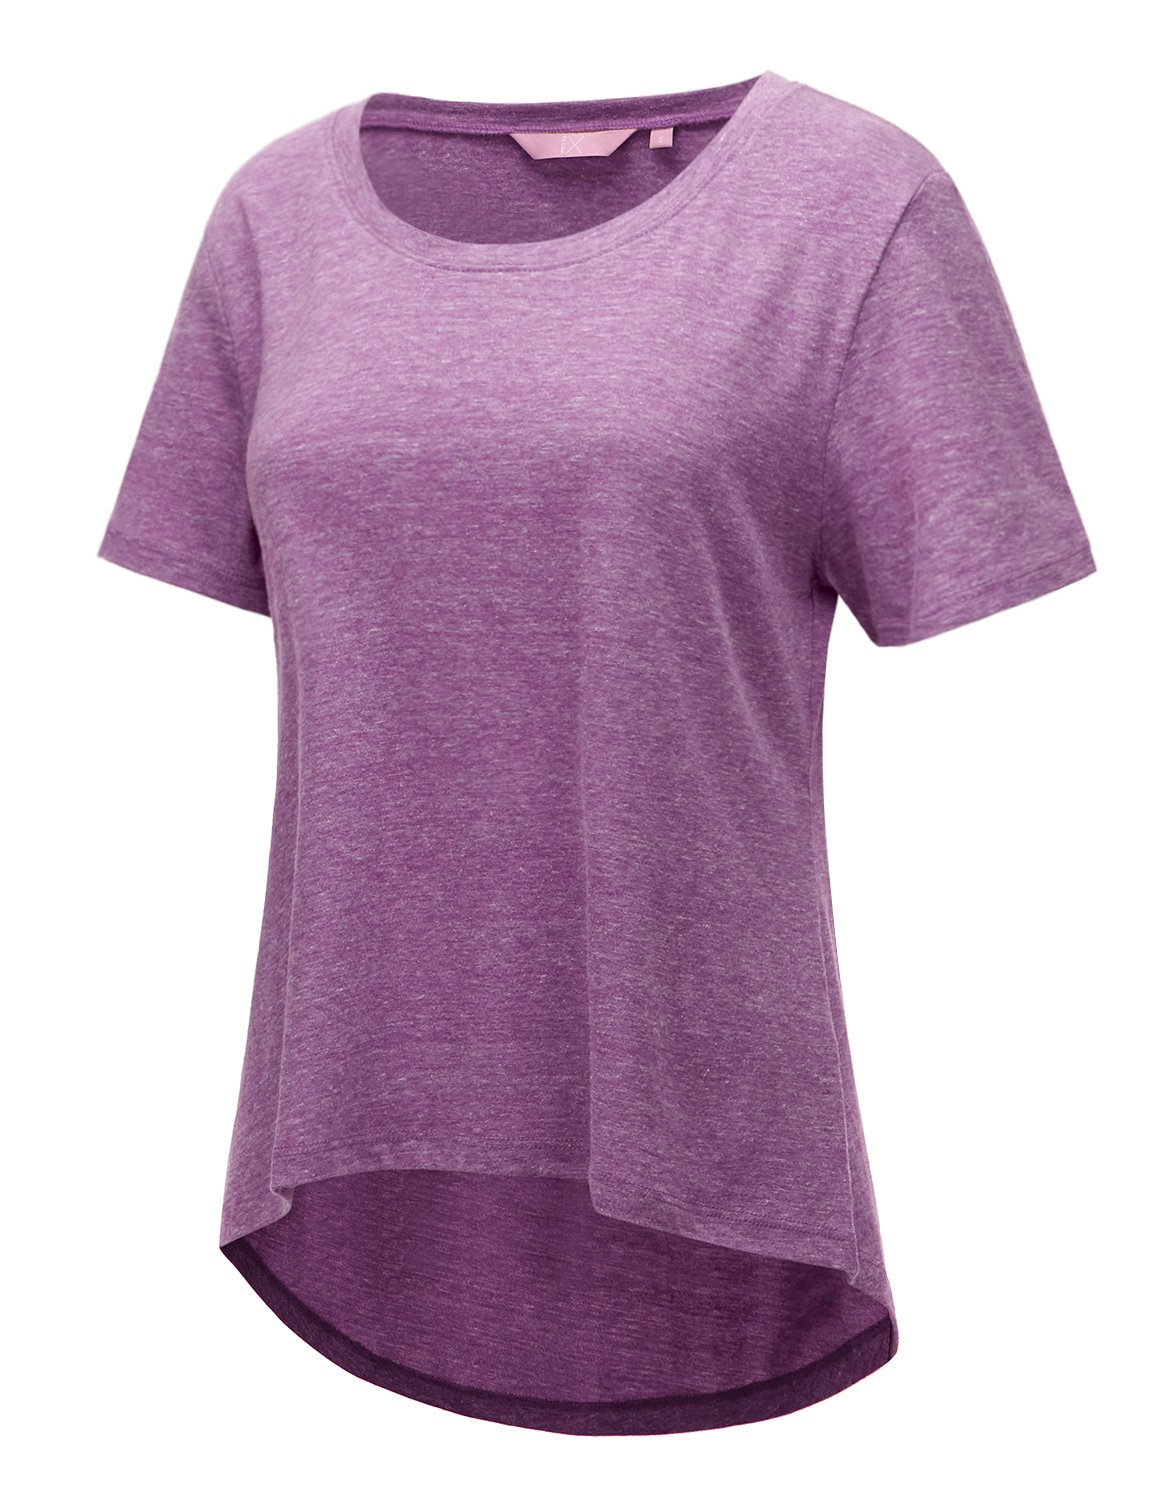 Regna X Womens Short Sleeve Loose fit Relaxed T-Shirts Purple S